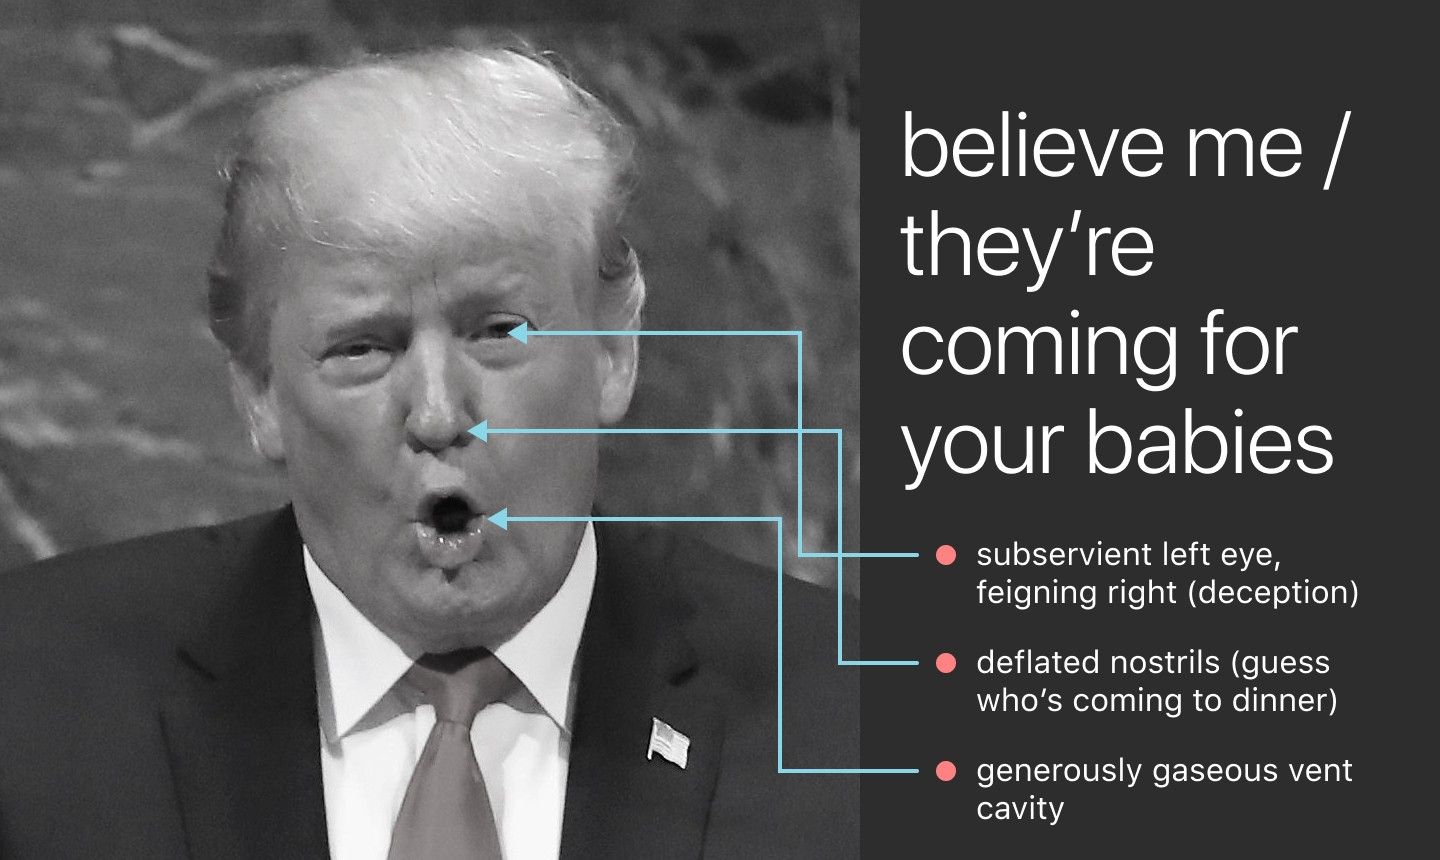 Trump's face. Lines drawn to show: • subservient left eye, feigning right (deception) • generously gaseous vent cavity